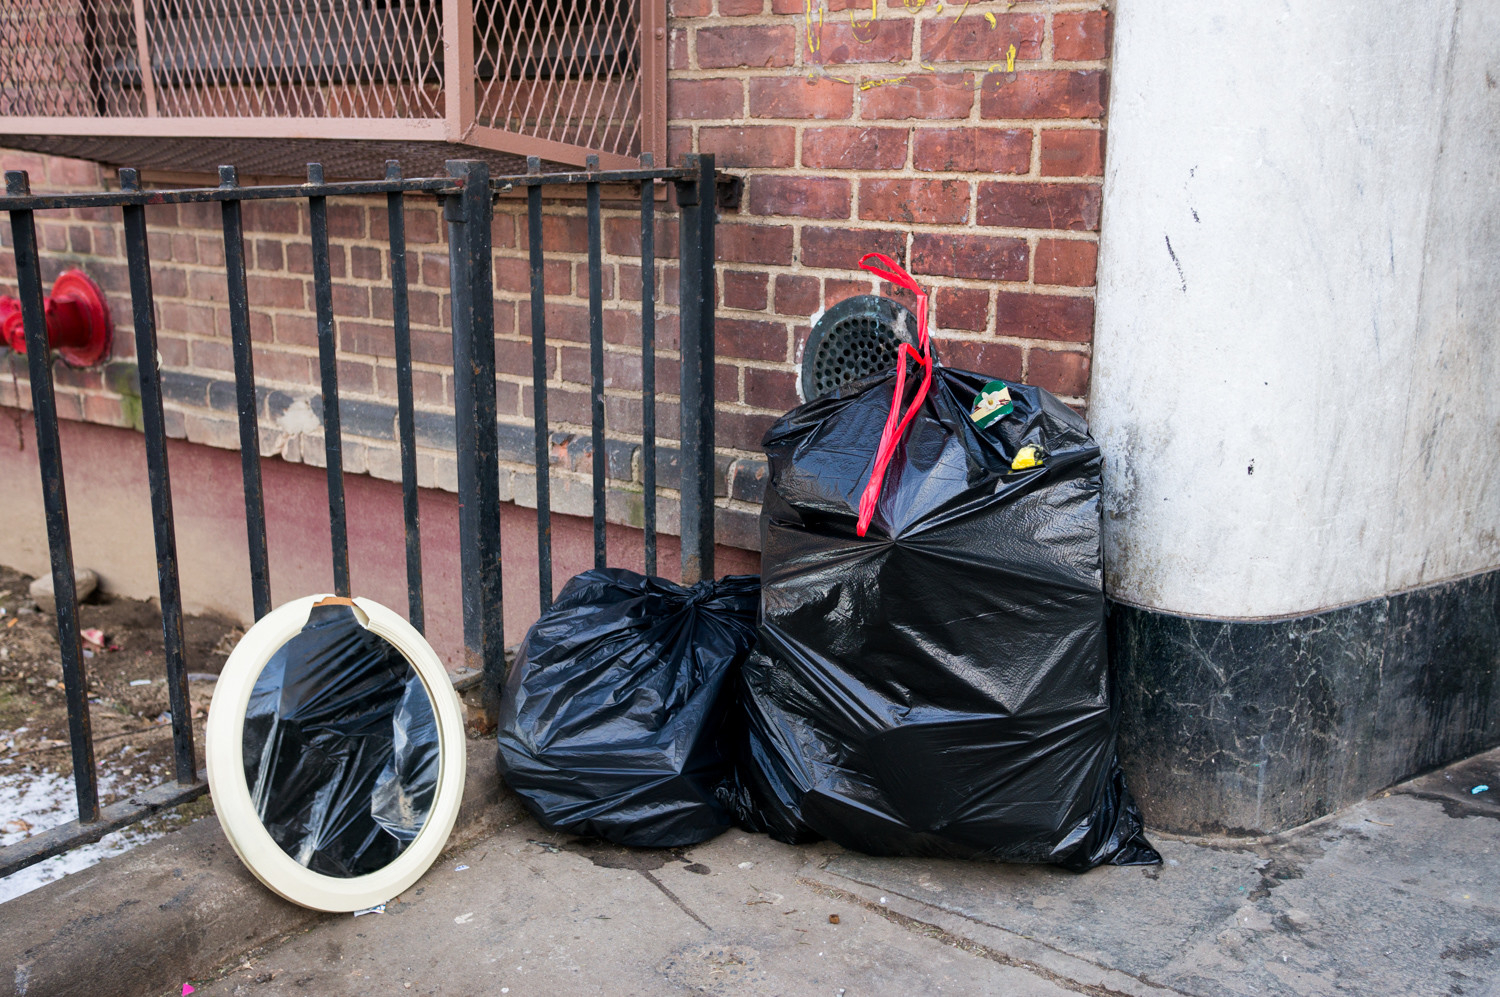 Some residents of the New York City Housing Authority's Marble Hill development complain about garbage being left in front of the buildings.